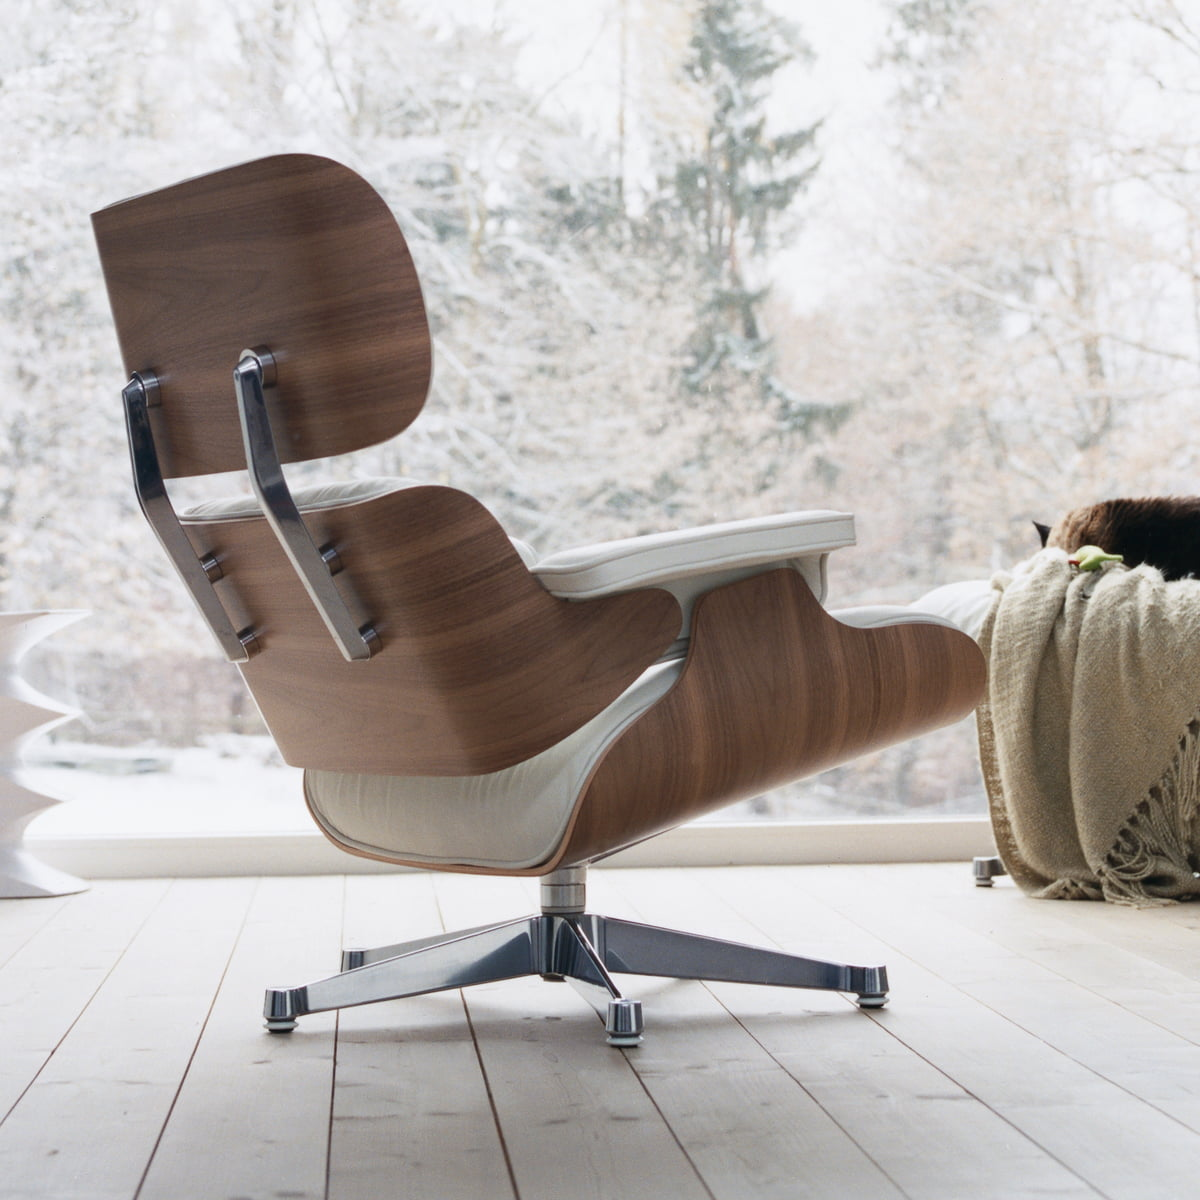 Vitra Eames Sessel Vitra Lounge Chair In Weiß Im Wohndesign Shop